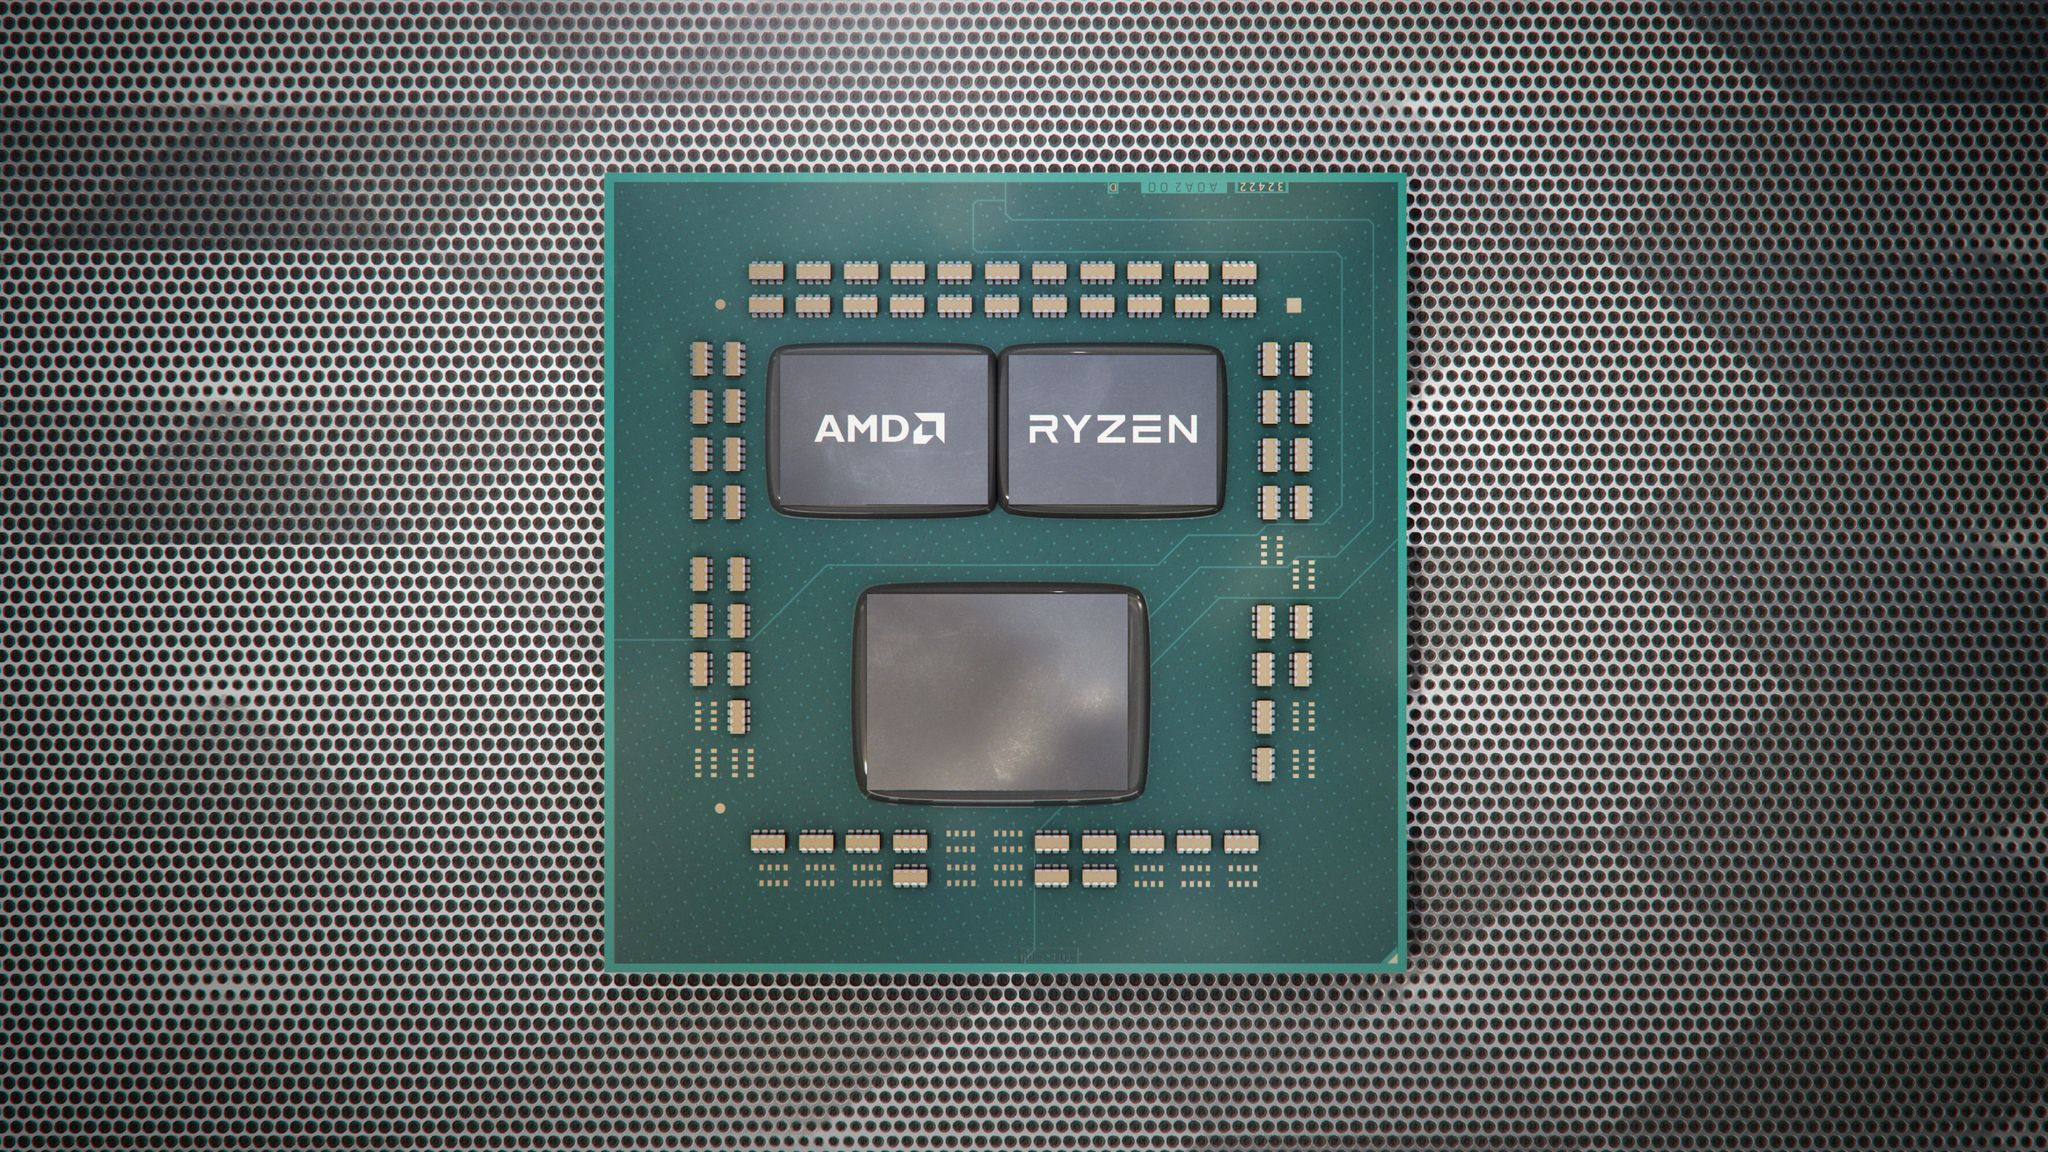 New Amd Threadripper Cpus Are Here But Look Out For Black Friday Ryzen Deals Amd Graphic Card Intel